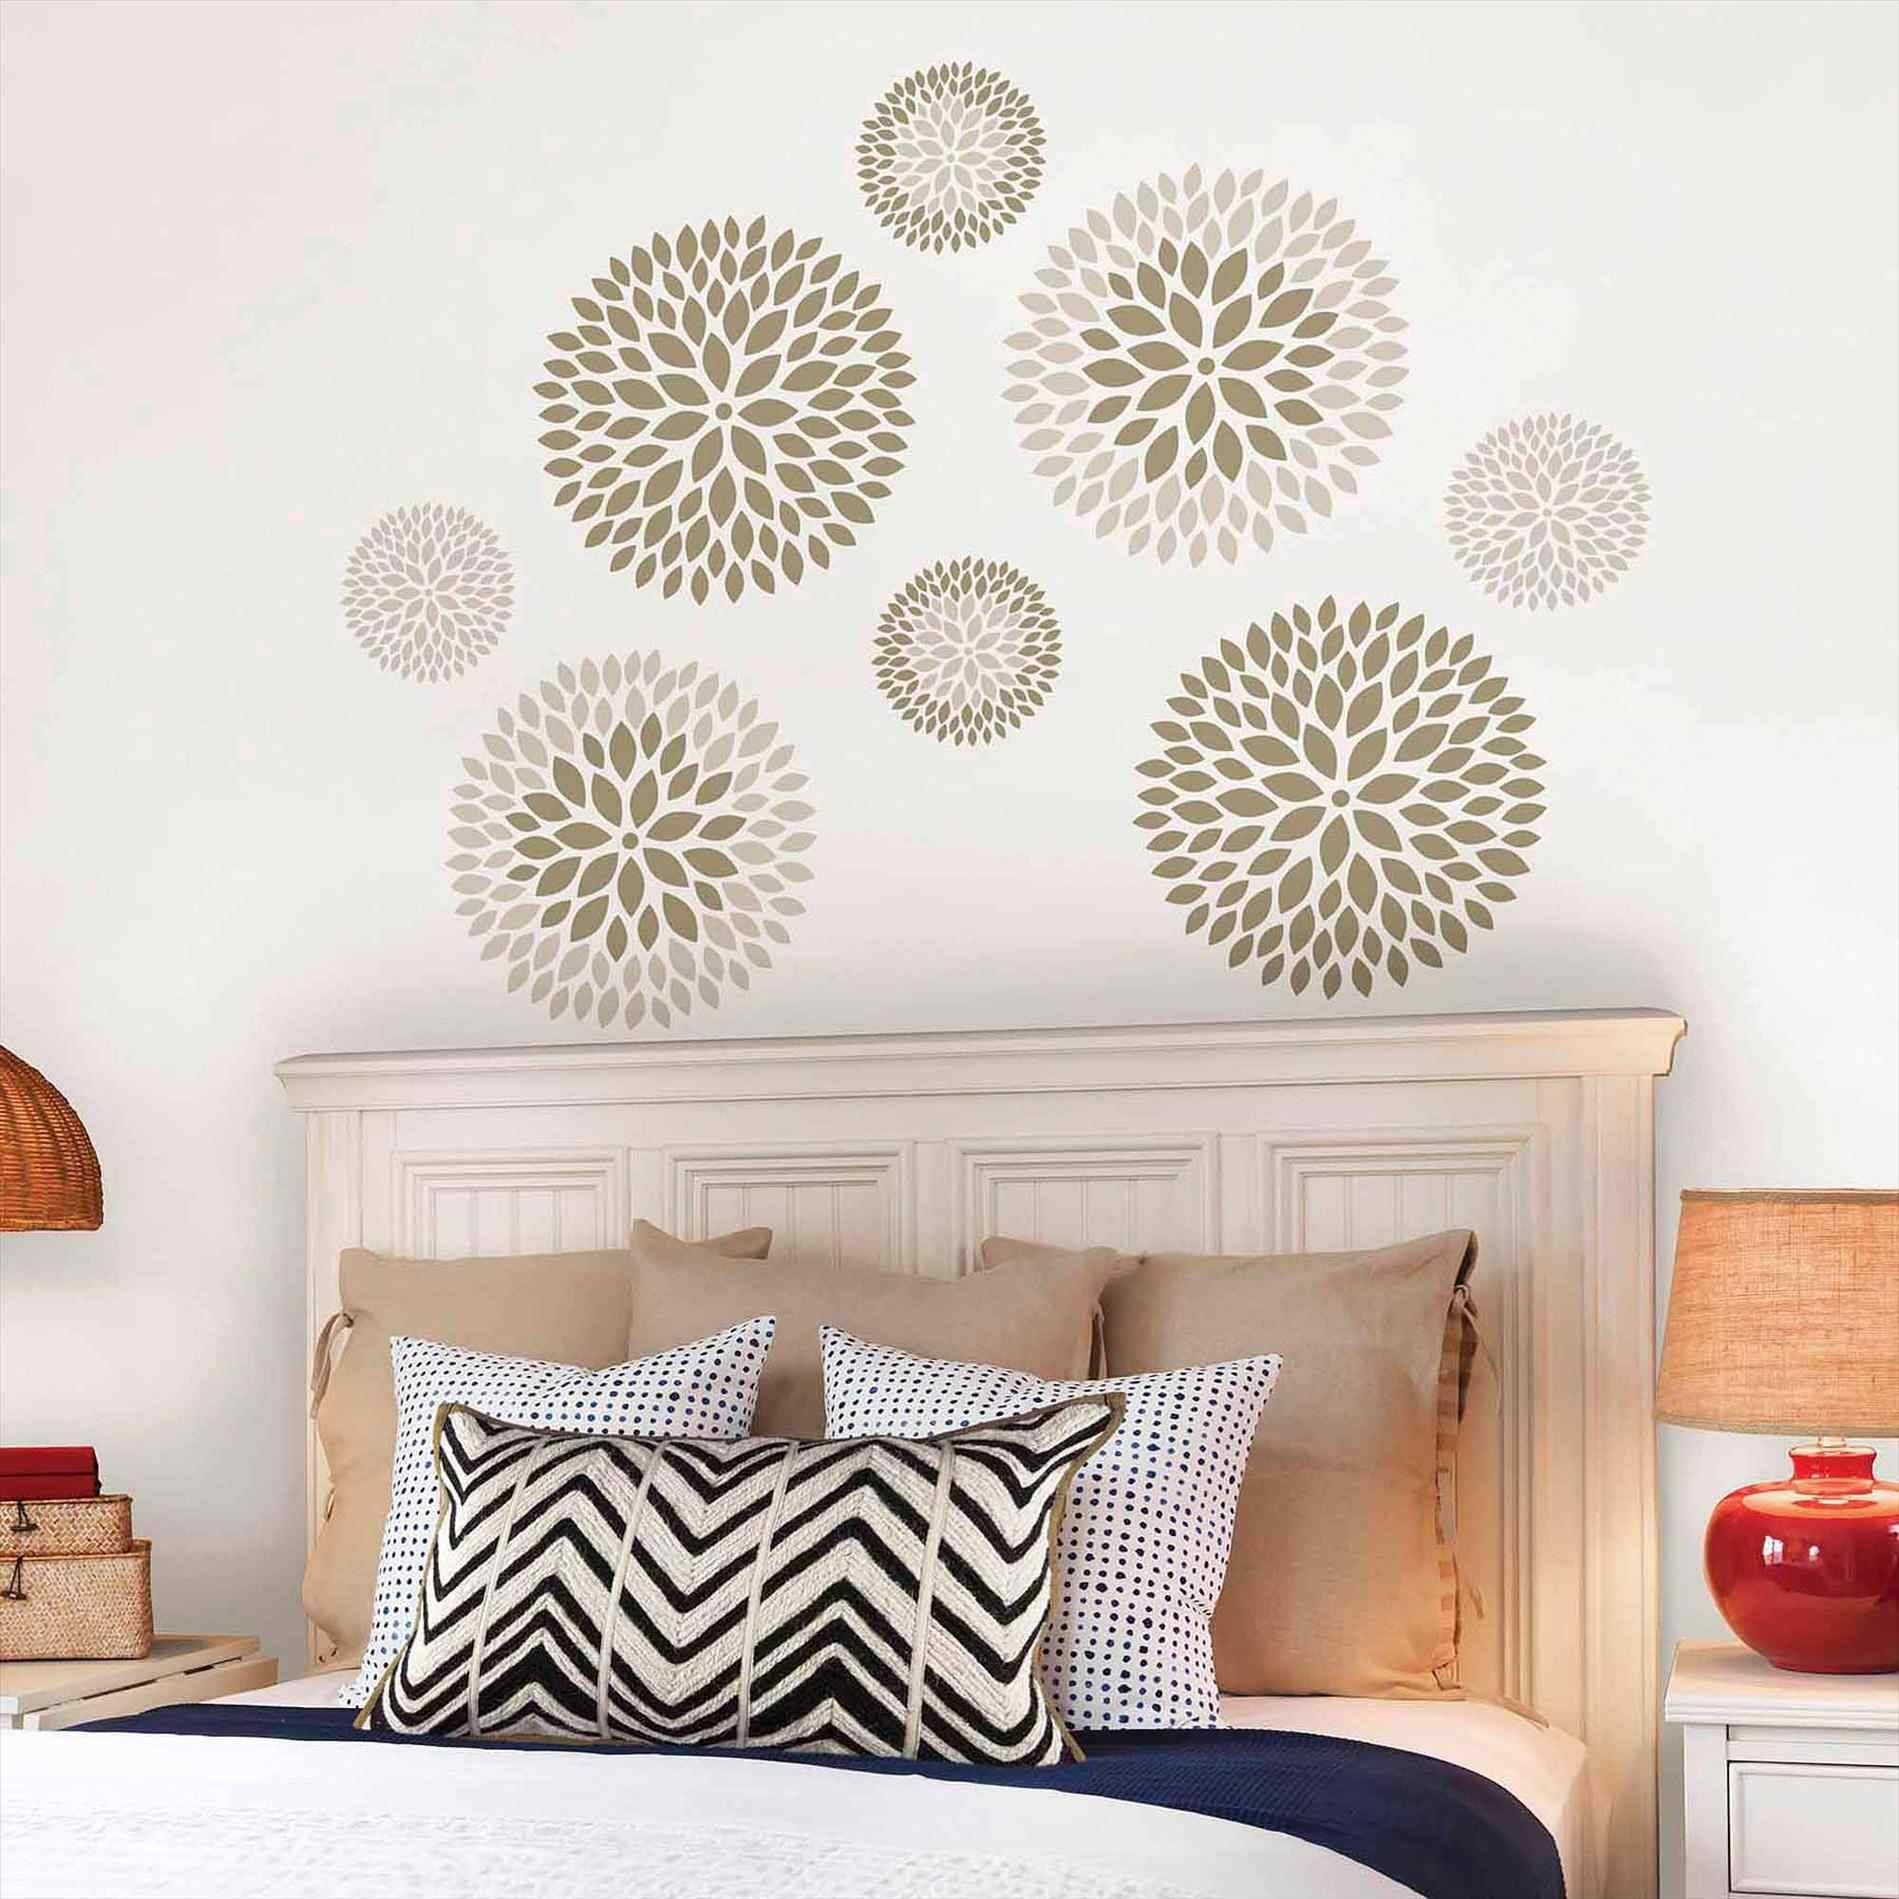 Big Damask Decals Wall Art Wall Decals For Bedroom Trends Also Pertaining To 2017 Art Nouveau Wall Decals (View 18 of 20)